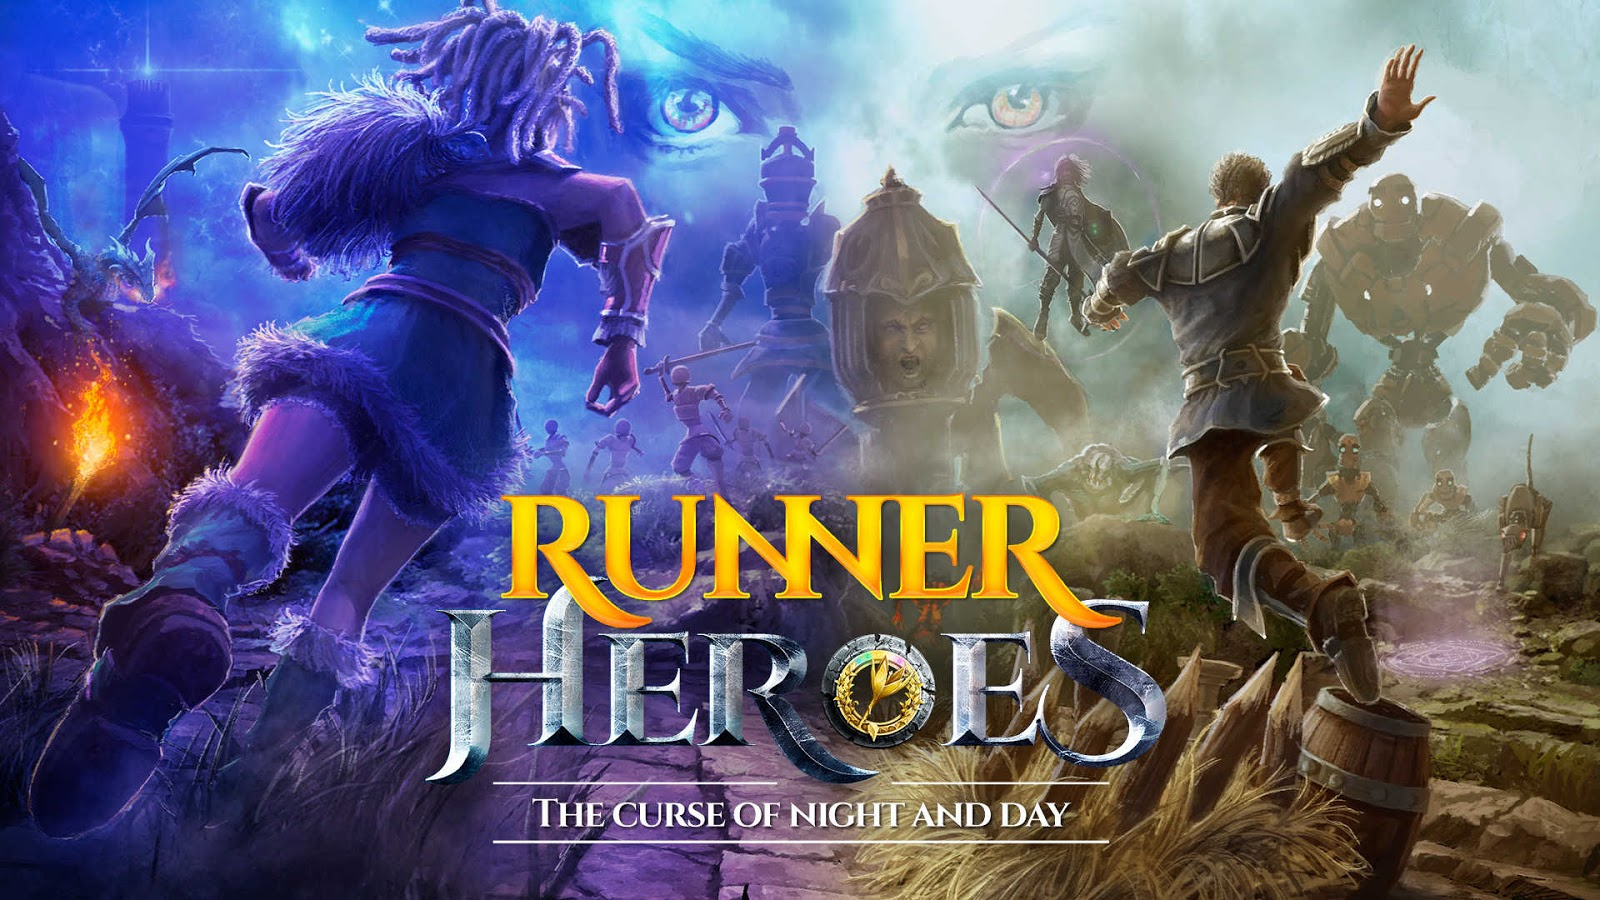 runner-heroes-the-curse-of-night-and-day